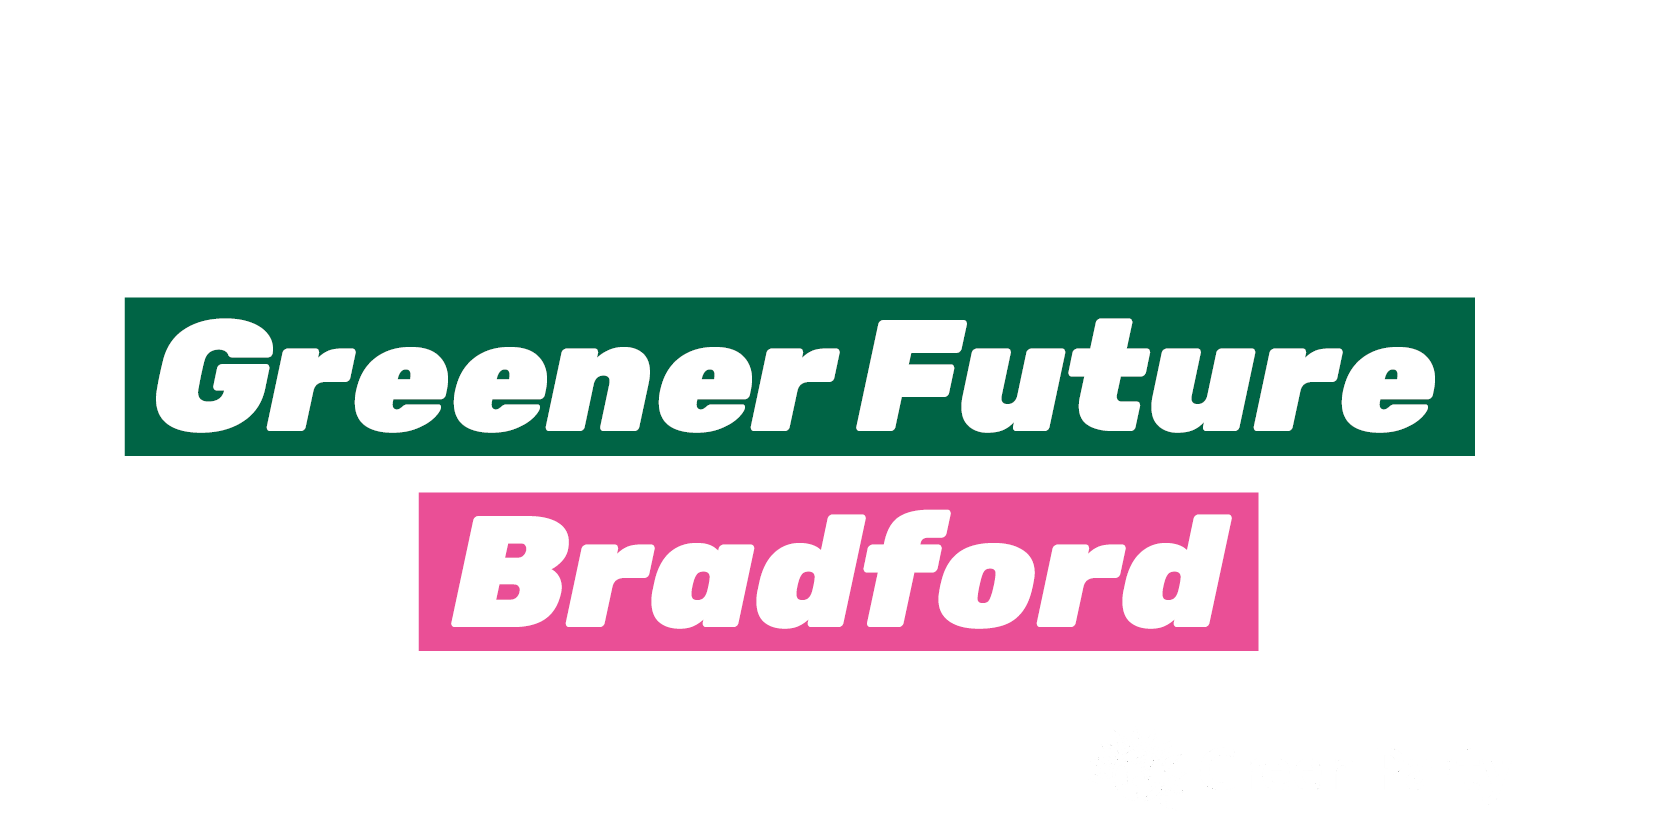 Bradford District Green Party